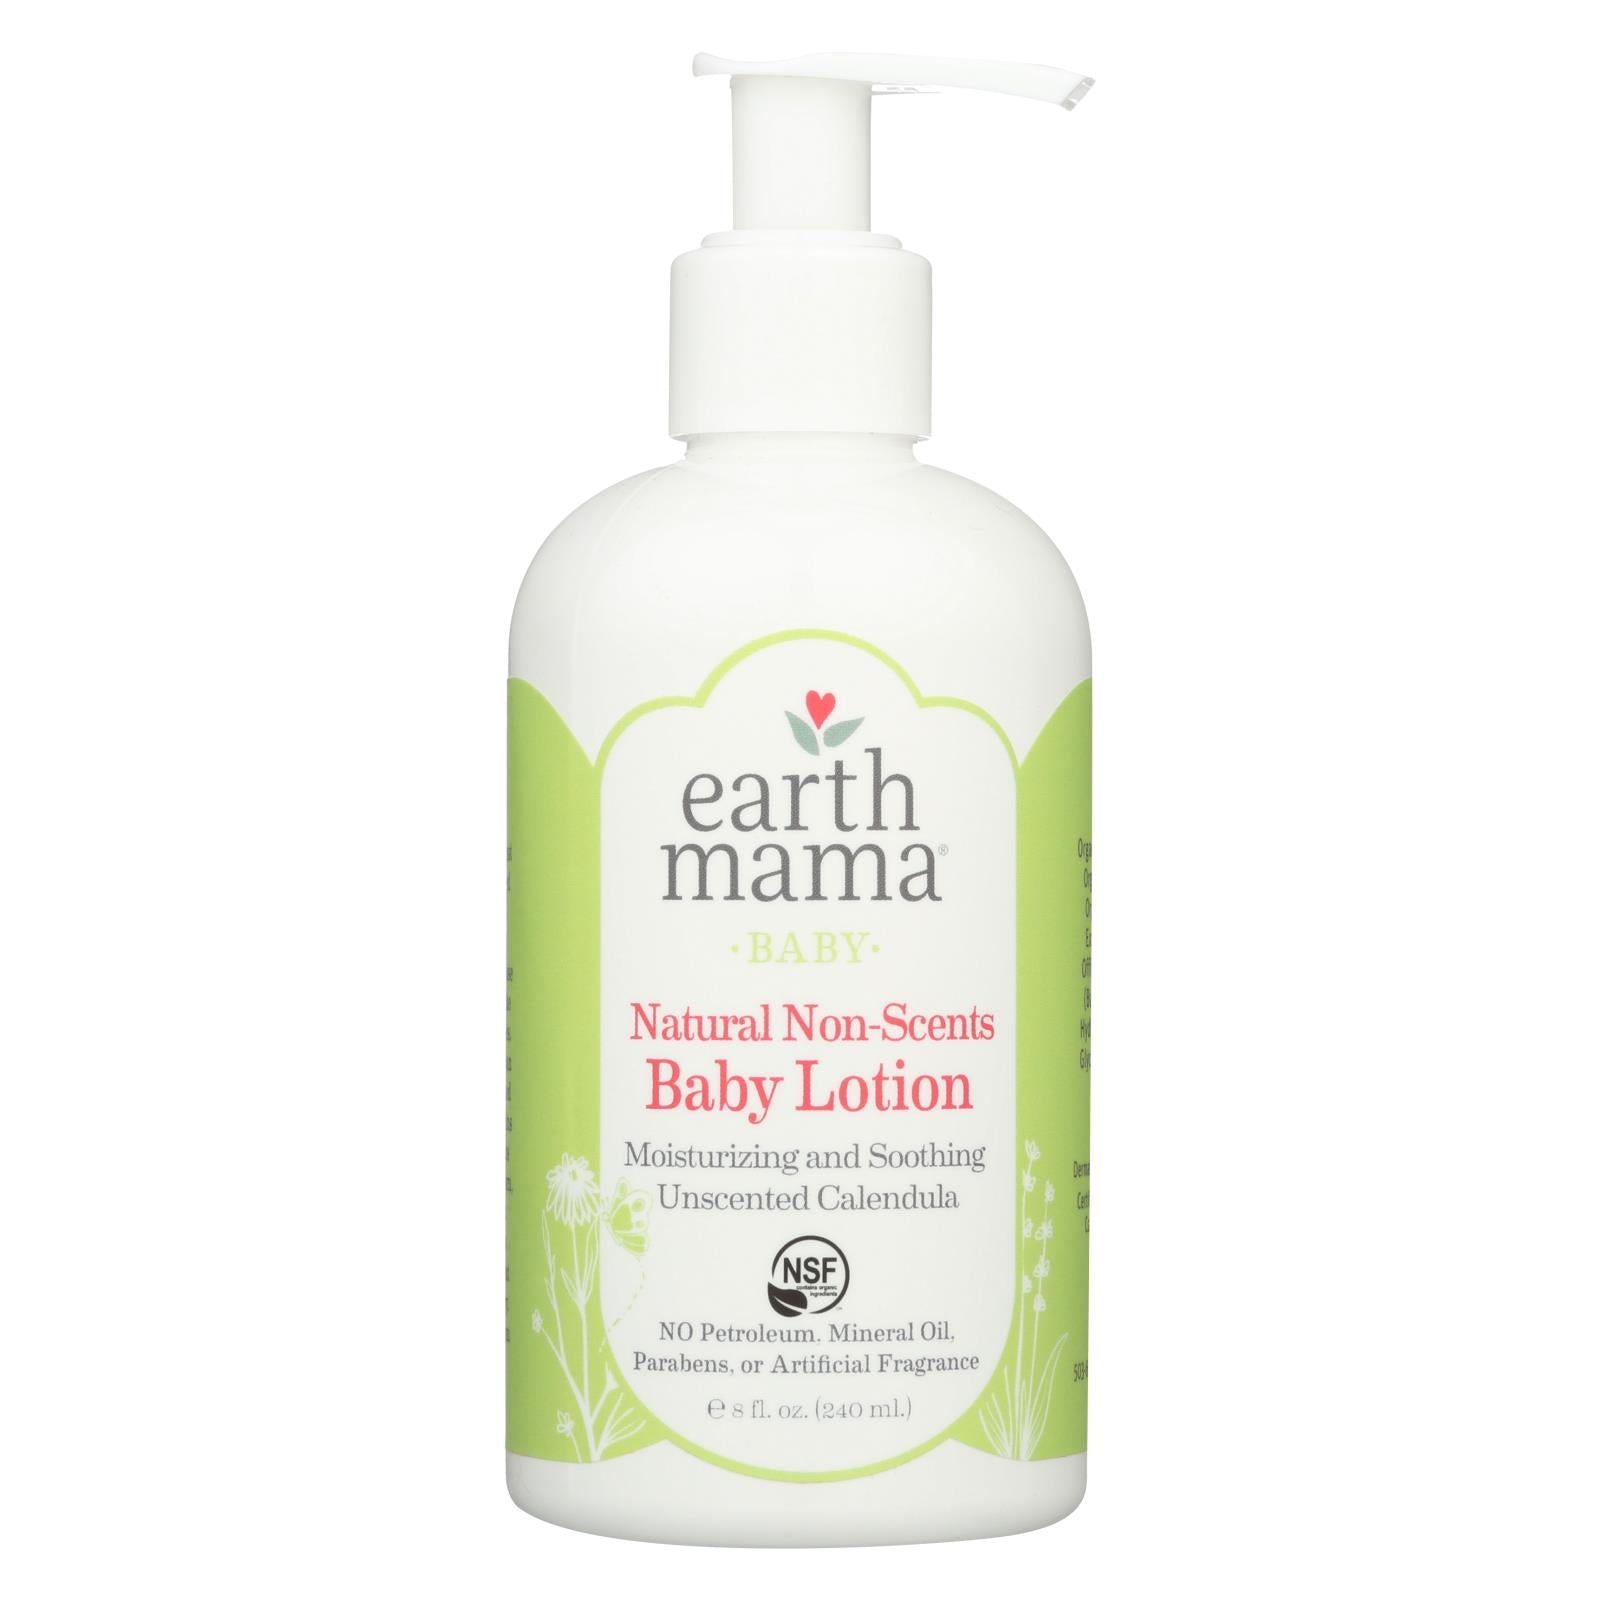 Buy Earth Mama Angel Baby Lotion - Natural Non-Scents - Fragrance Free - 8 oz - Baby Lotion and Oil from Veroeco.com